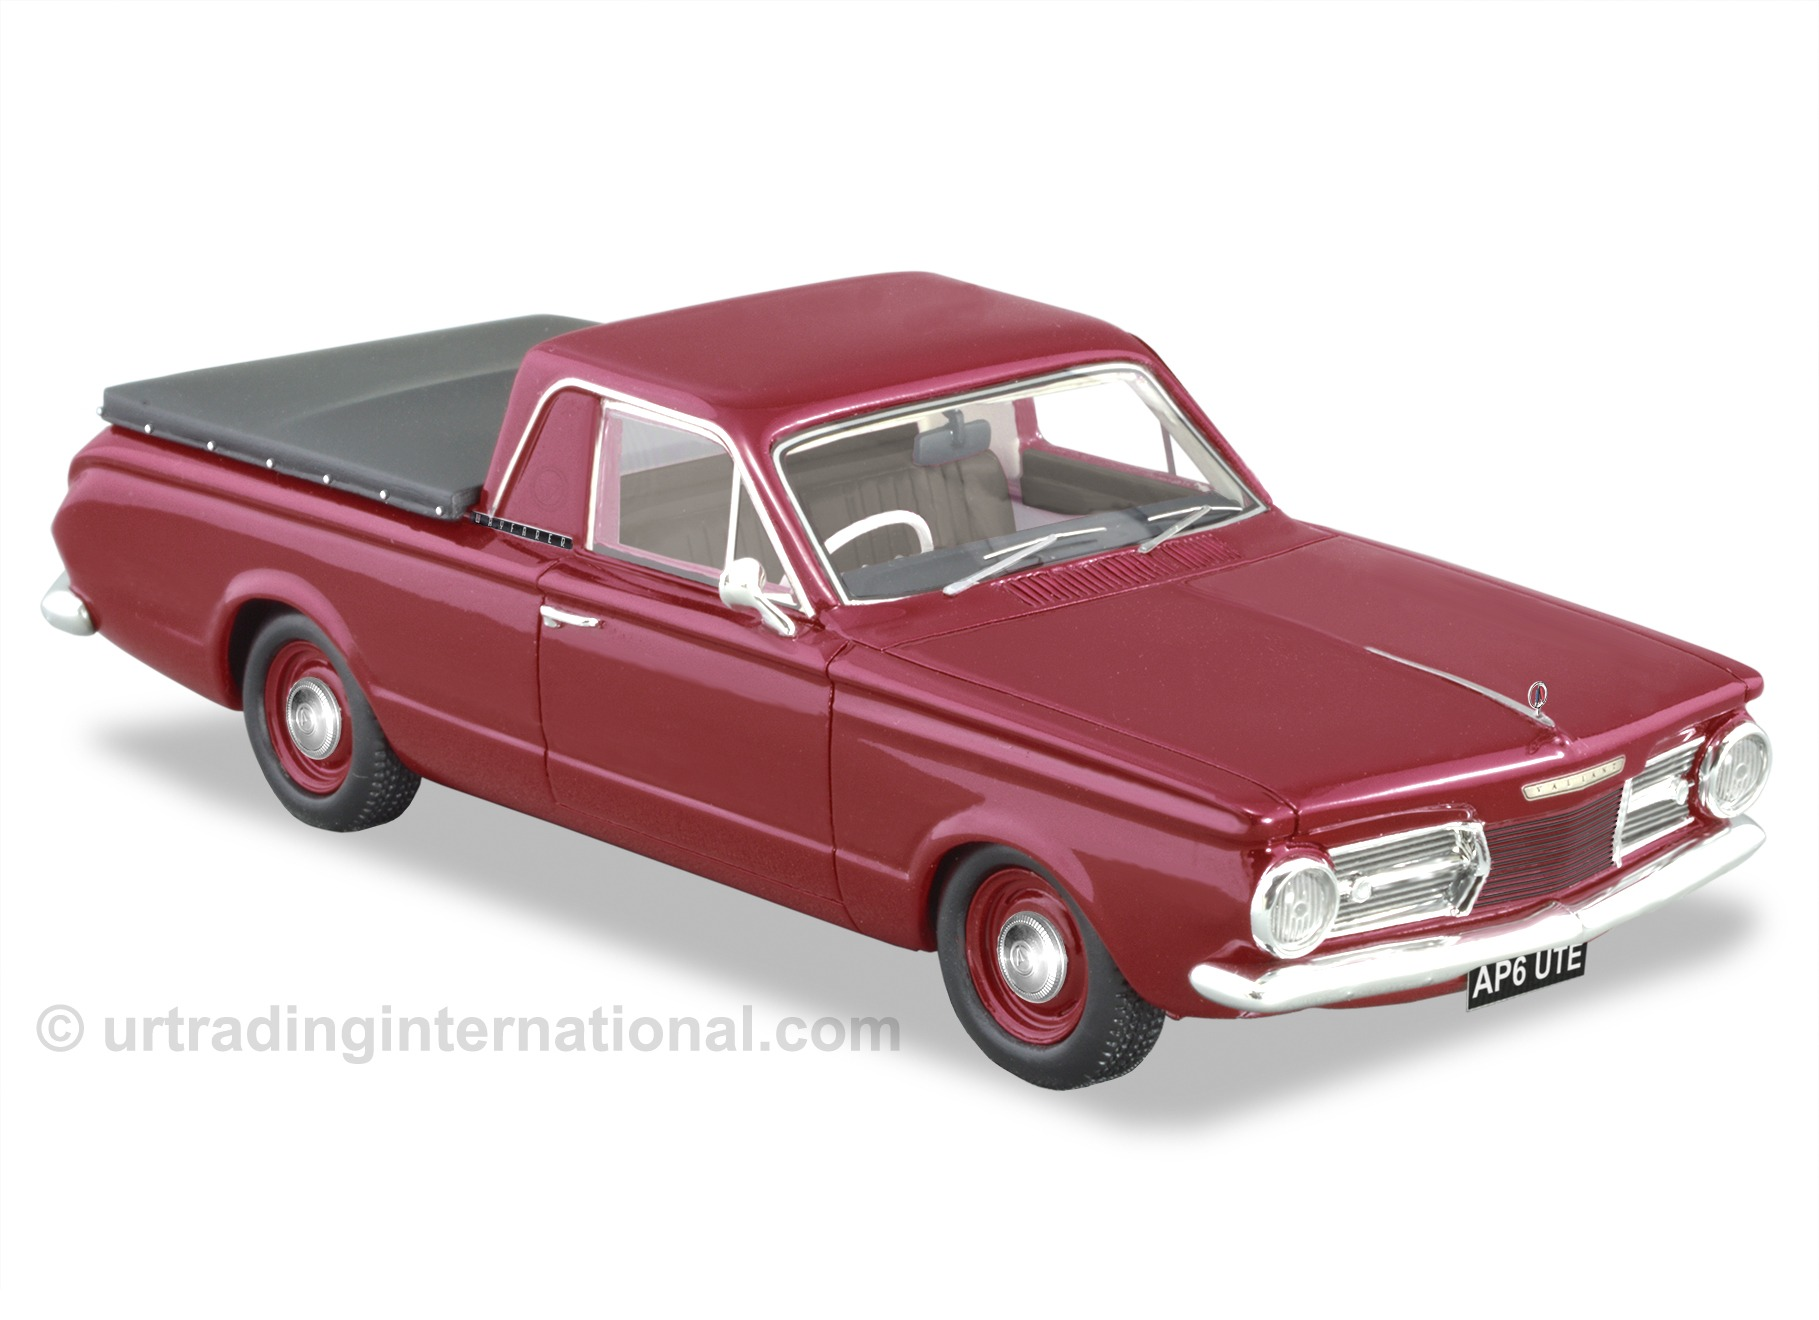 1965 Chrysler Valiant AP6 Ute – Red